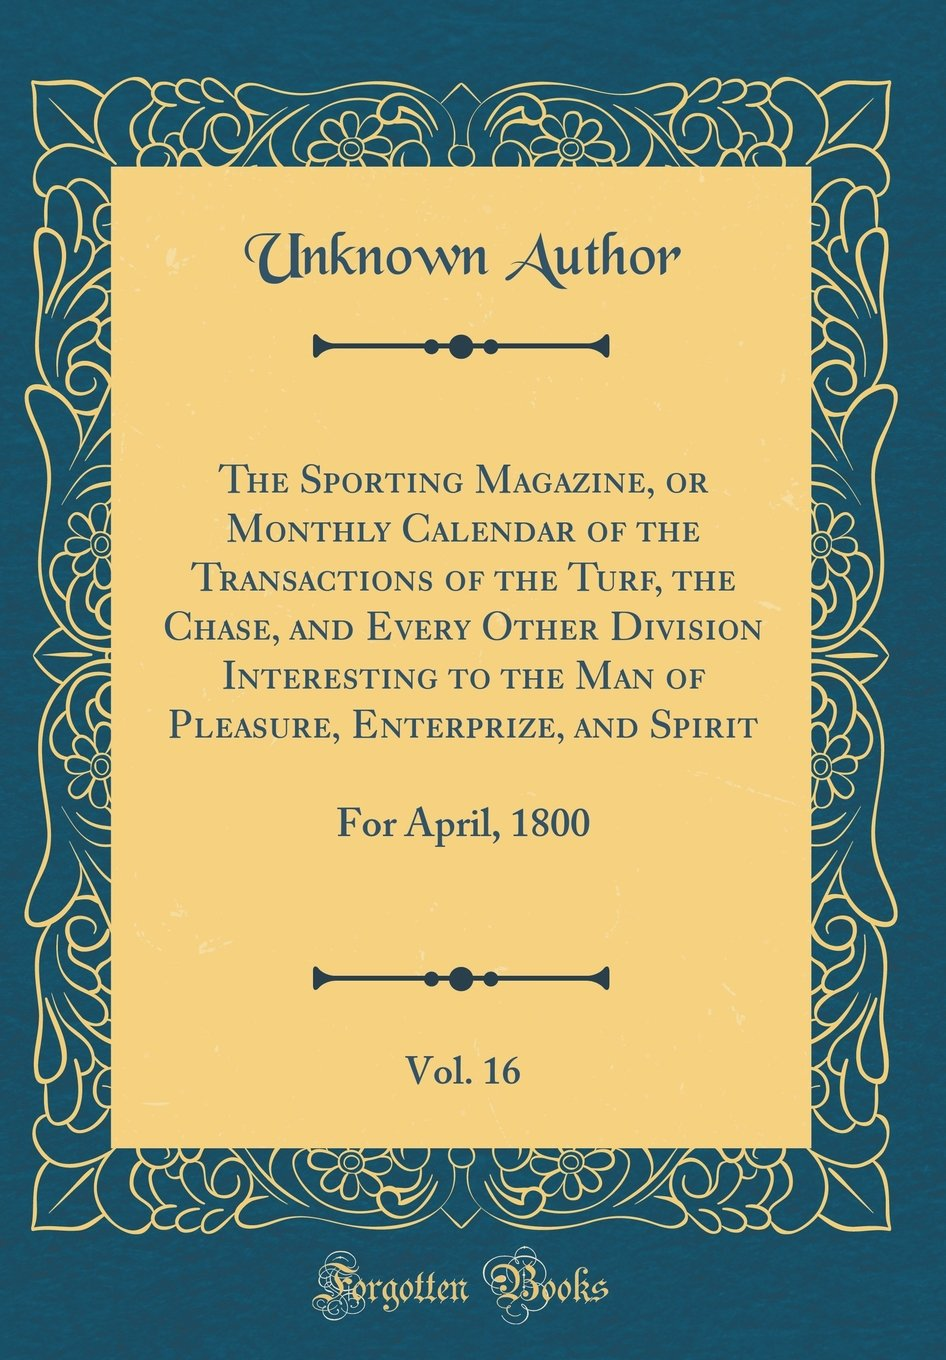 The Sporting Magazine, or Monthly Calendar of the Transactions of the Turf, the Chase, and Every Other Division Interesting to the Man of Pleasure, ... Vol. 16: For April, 1800 (Classic Reprint) pdf epub